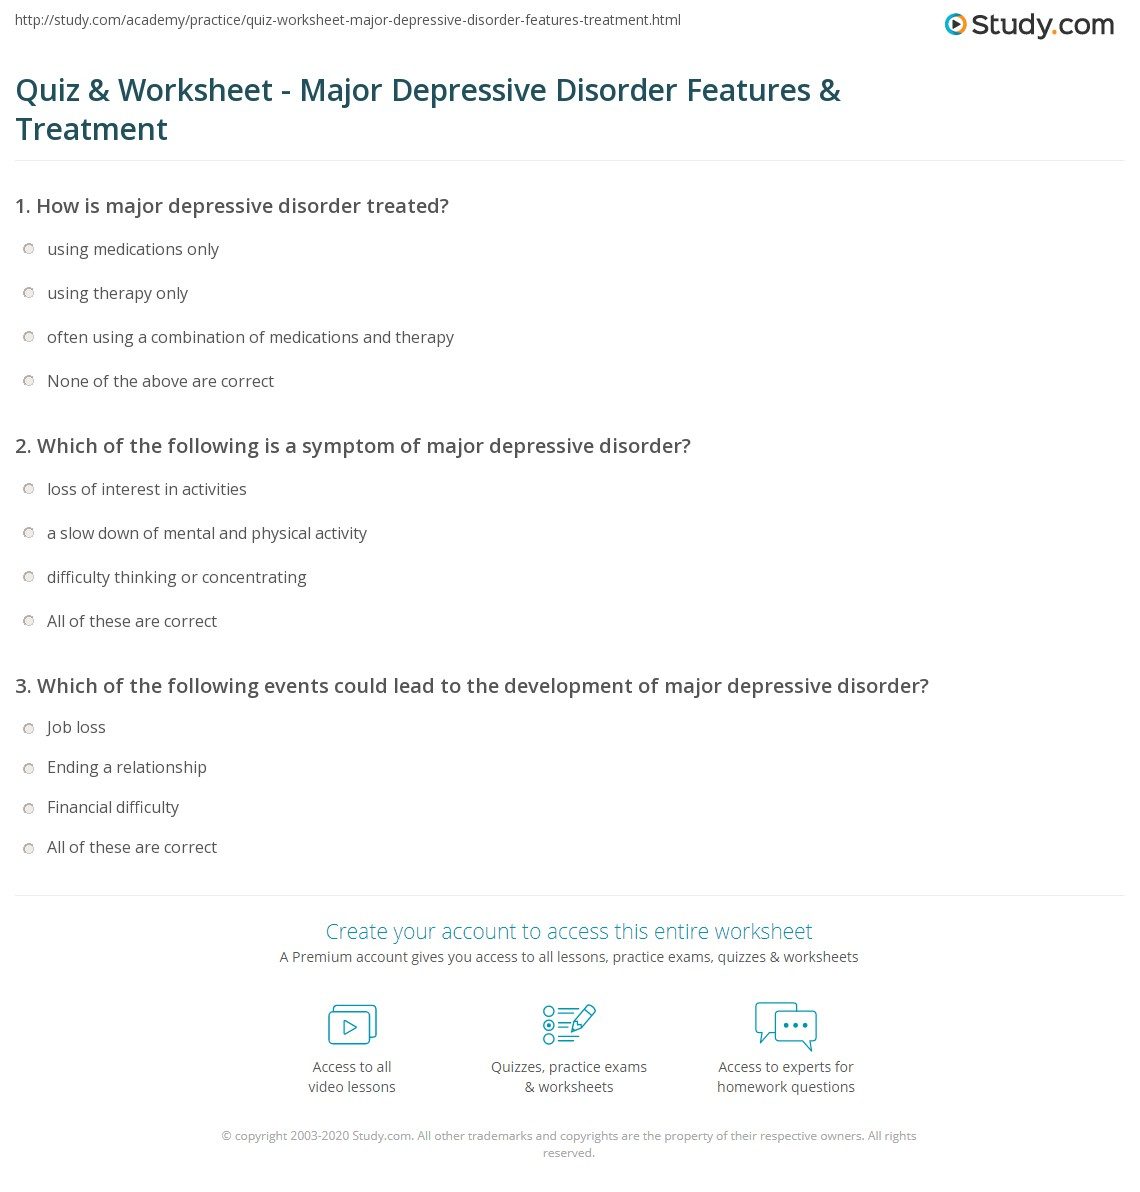 a study on depressive disorder This review found 28 studies on five second‐generation antipsychotic drugs (amisulpride, aripiprazole, olanzapine, quetiapine and risperidone) comparing the effects of the drugs alone or adding them or placebo to antidepressants for major depressive disorder and dysthymia.